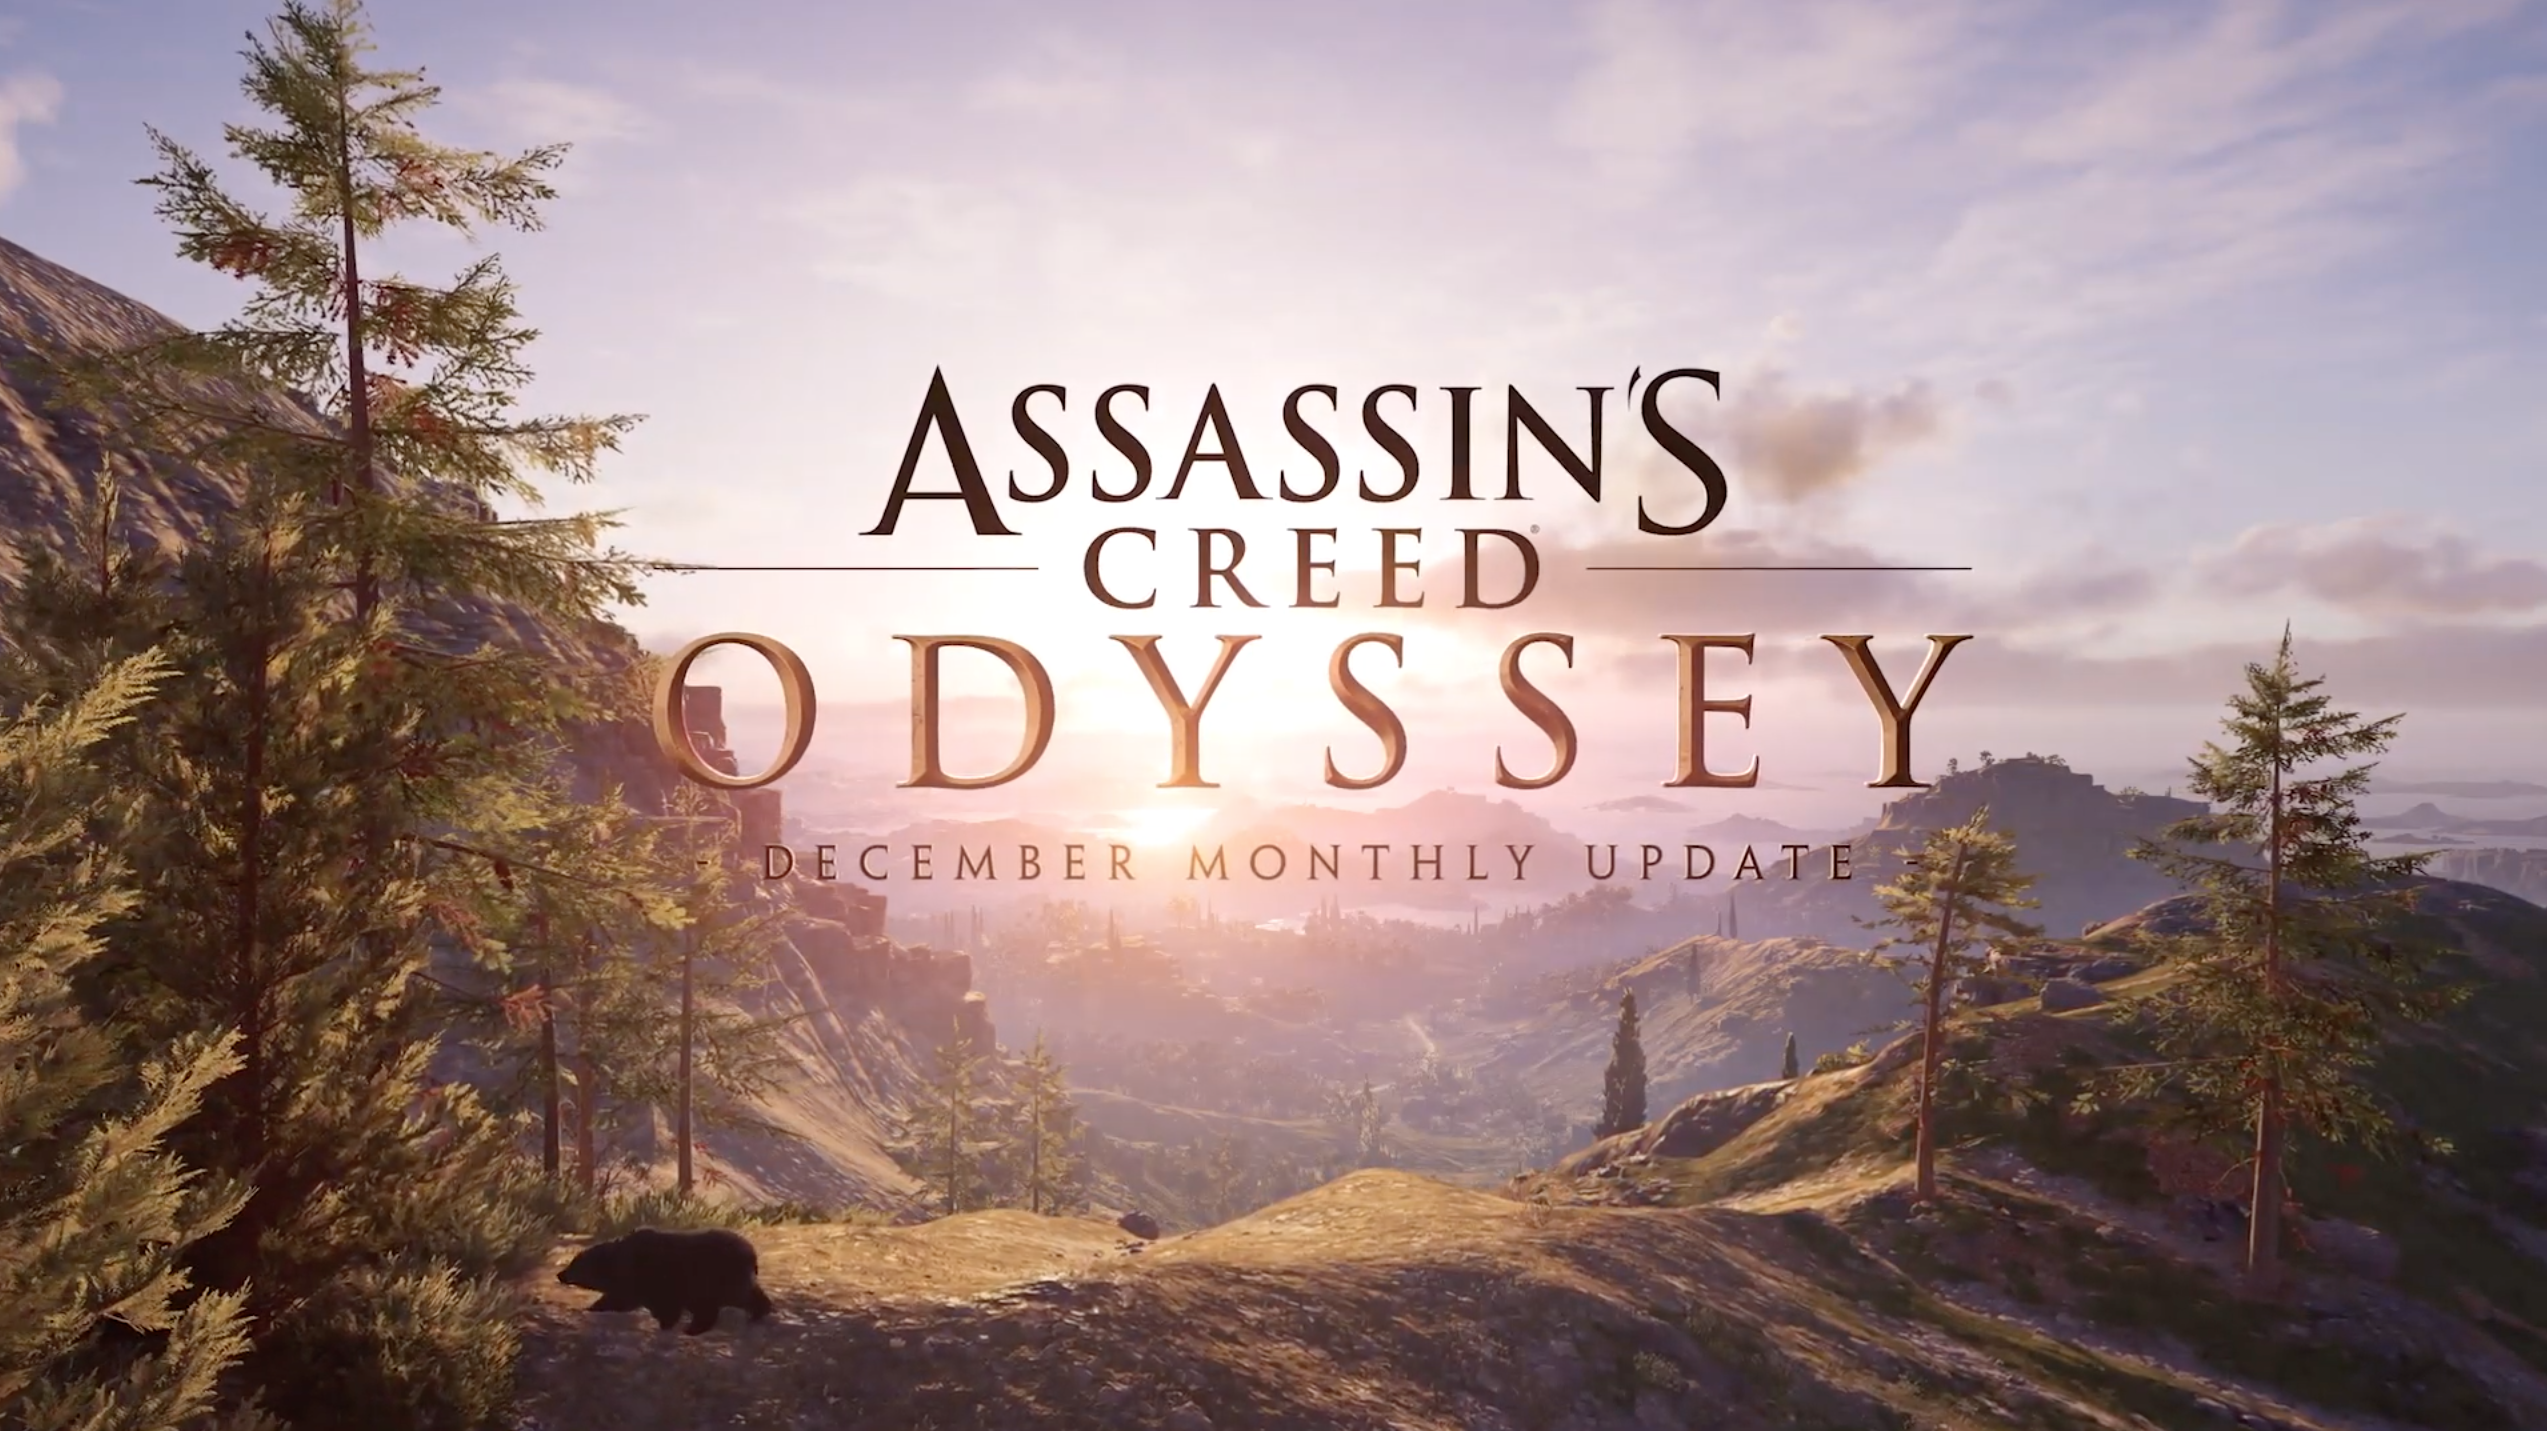 Assassin's Creed Odyssey – December Monthly Update